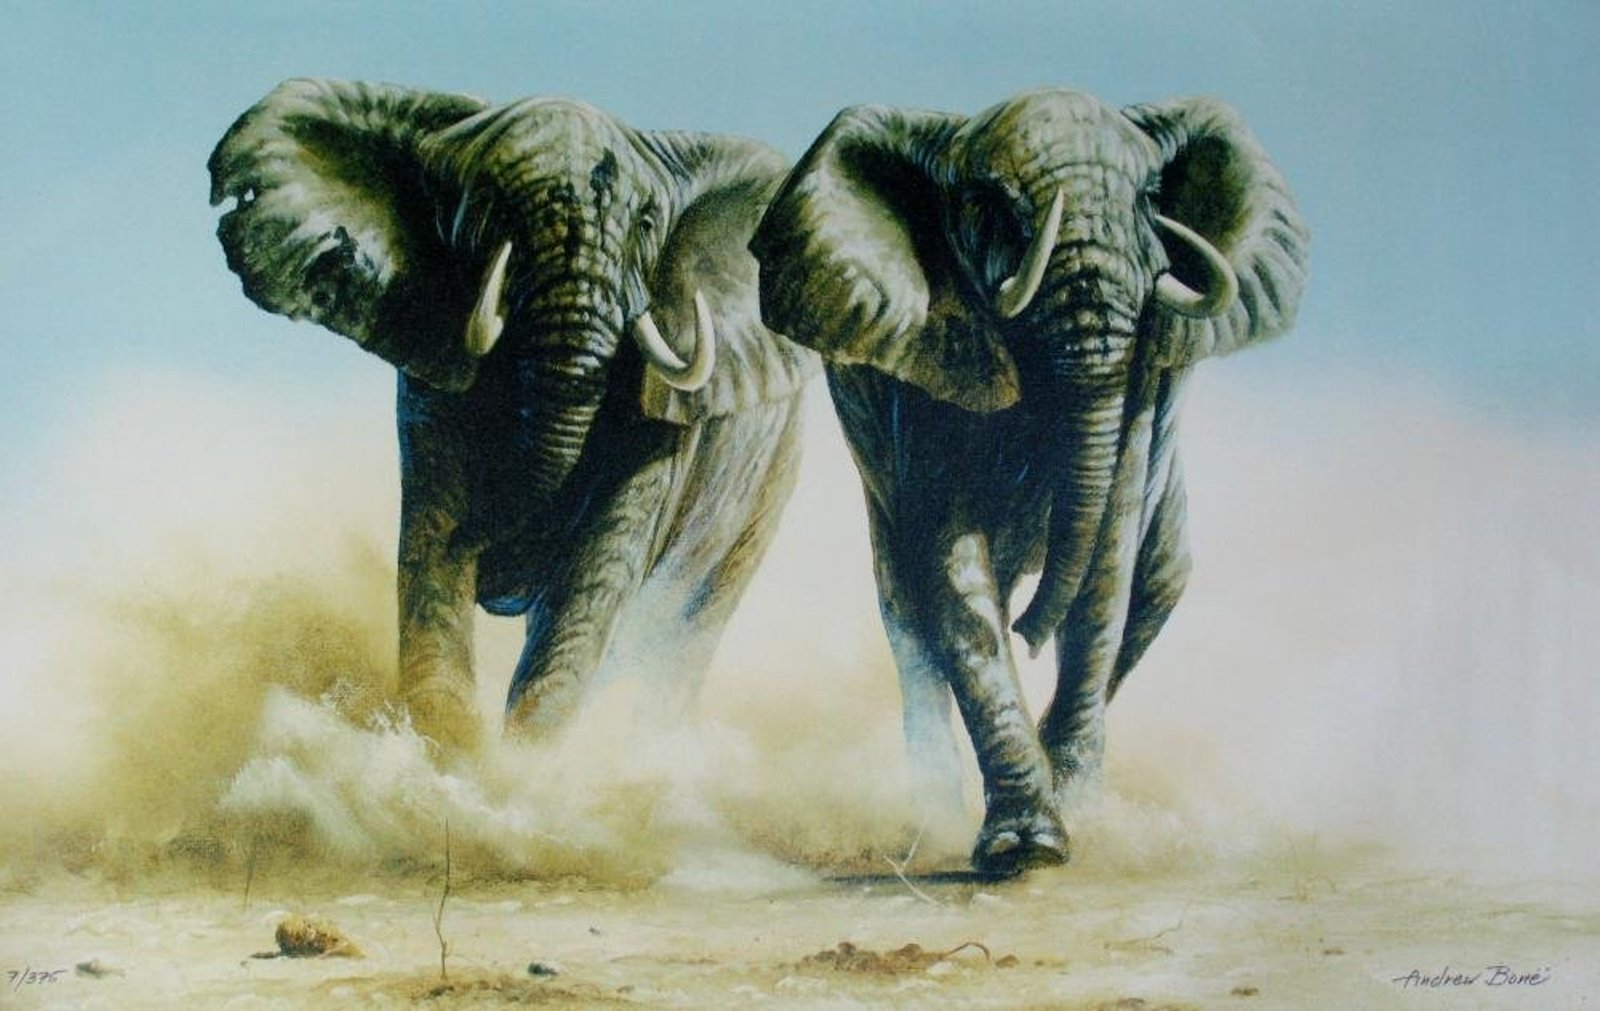 Elephant Stampede by Andrew Bone